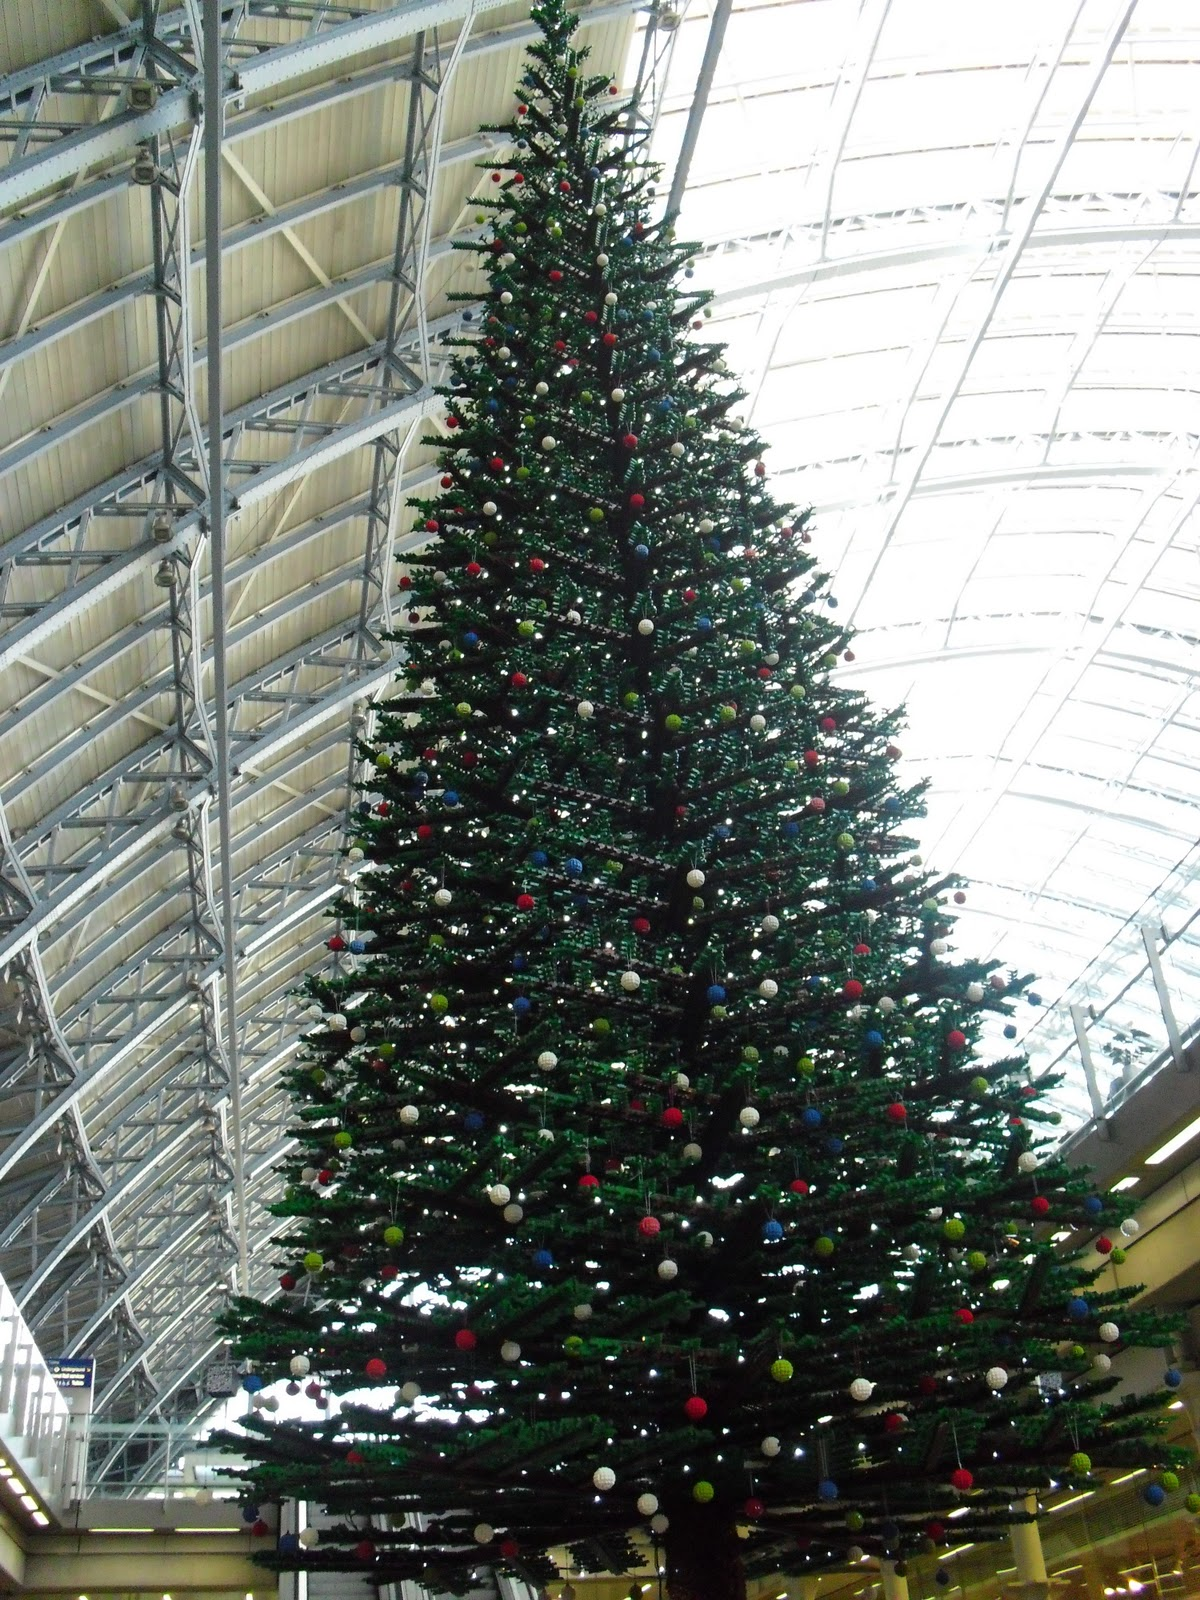 Wondrous Giant Lego Christmas Tree At St Pancras Station London Videos Easy Diy Christmas Decorations Tissureus